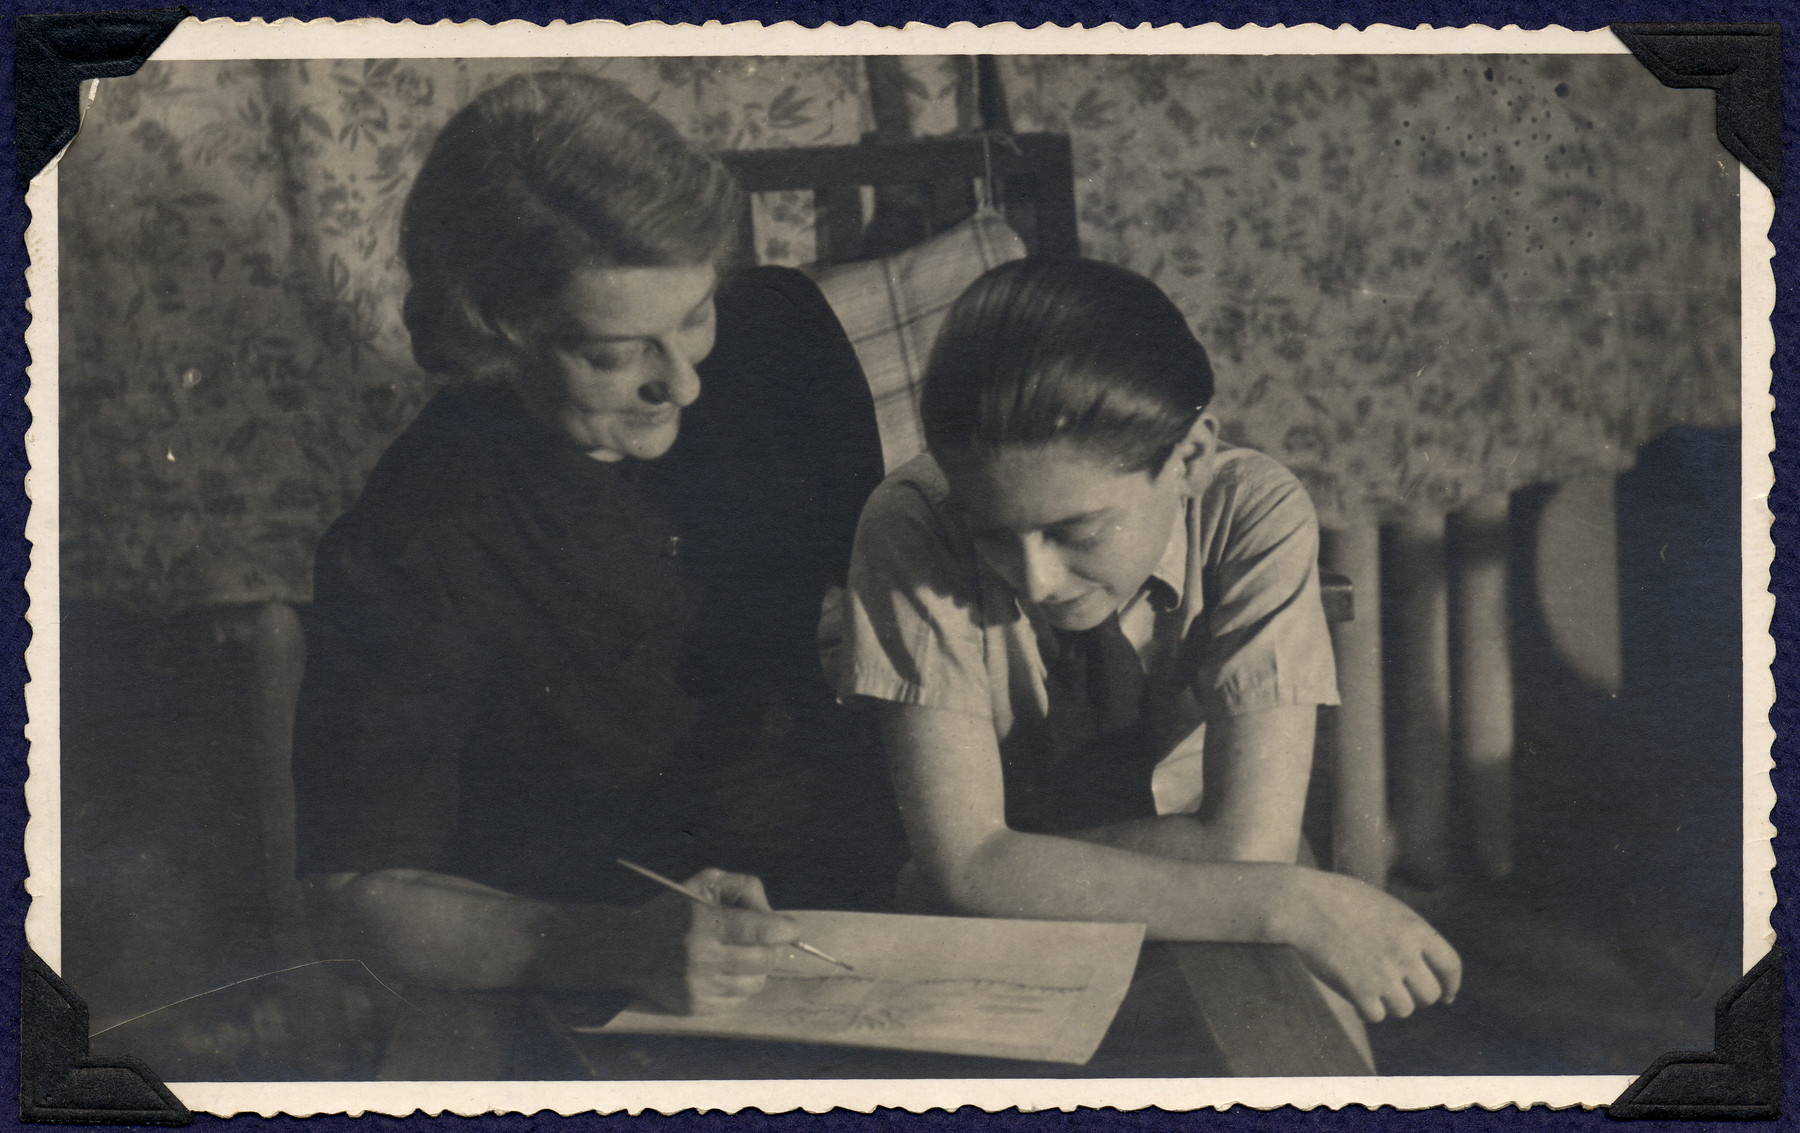 A mother and son, both survivors of Theresienstadt, study a document in their apartment in postwar Prague.  Pictured are Margaret and Michael Grunbaum.